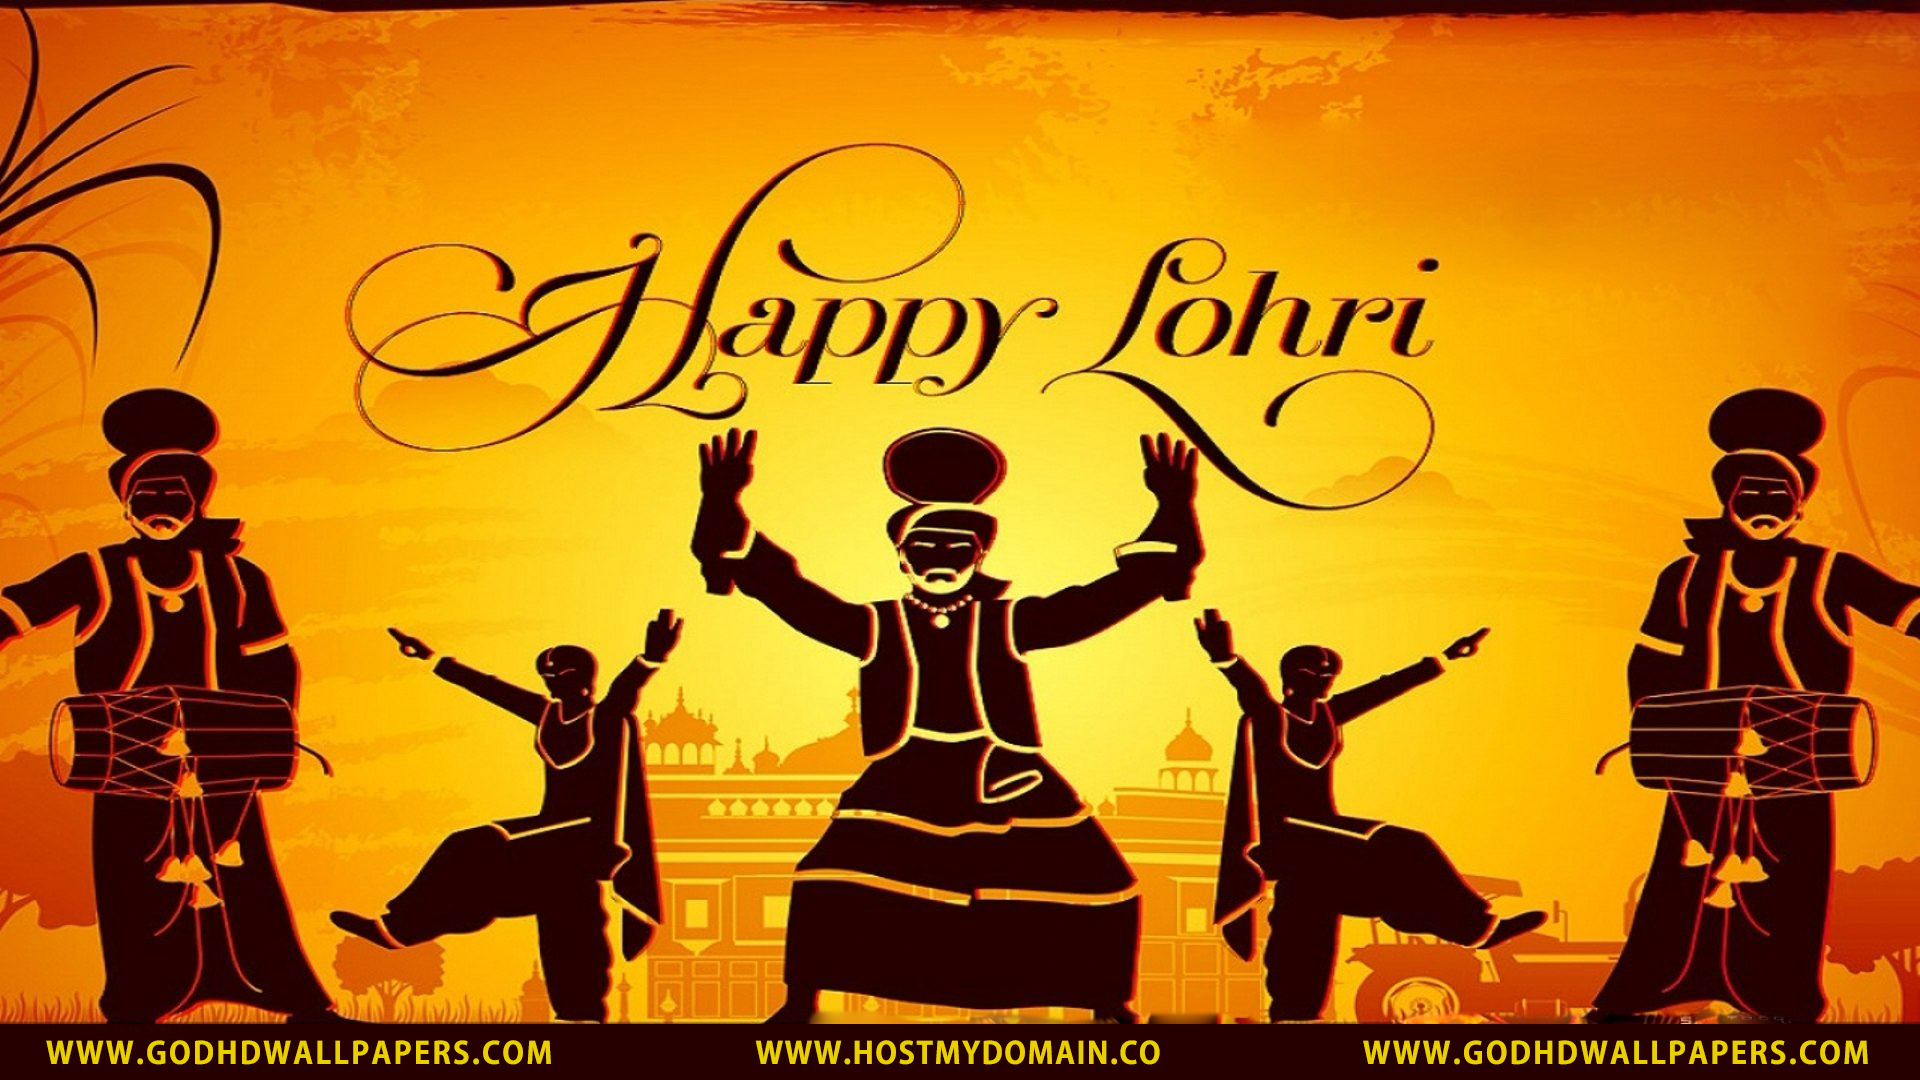 Happy Lohri Festival Wishes Quotes Images Hd Wallpapers 1080p